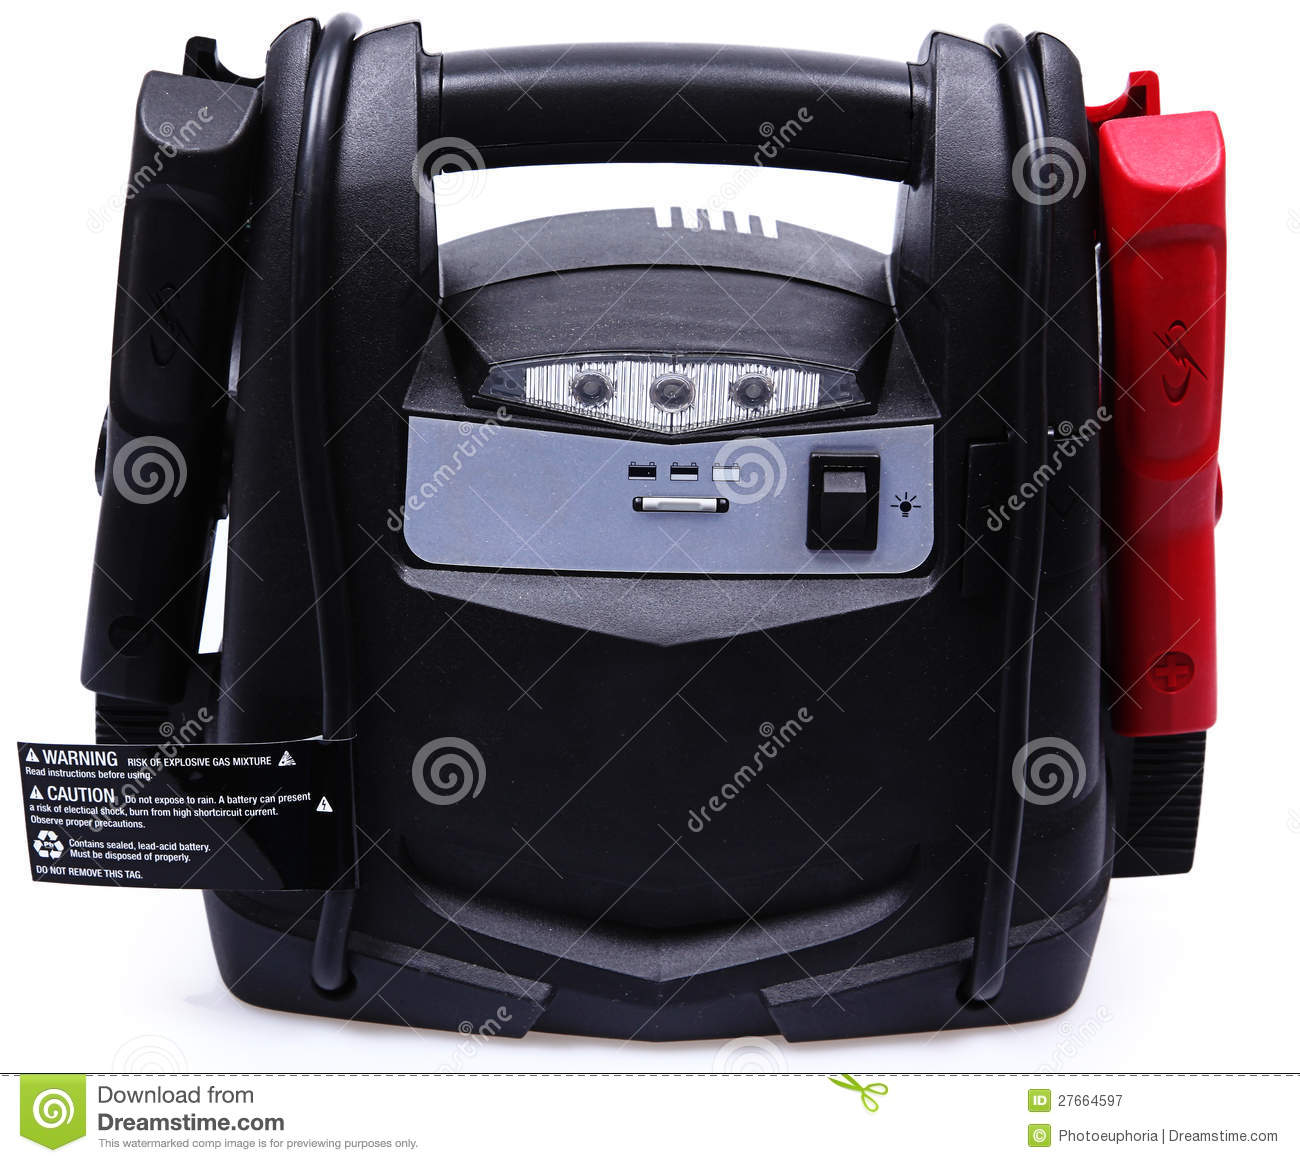 Portable Generator With Jumper Cables : Portable battery pack and jumper cables royalty free stock